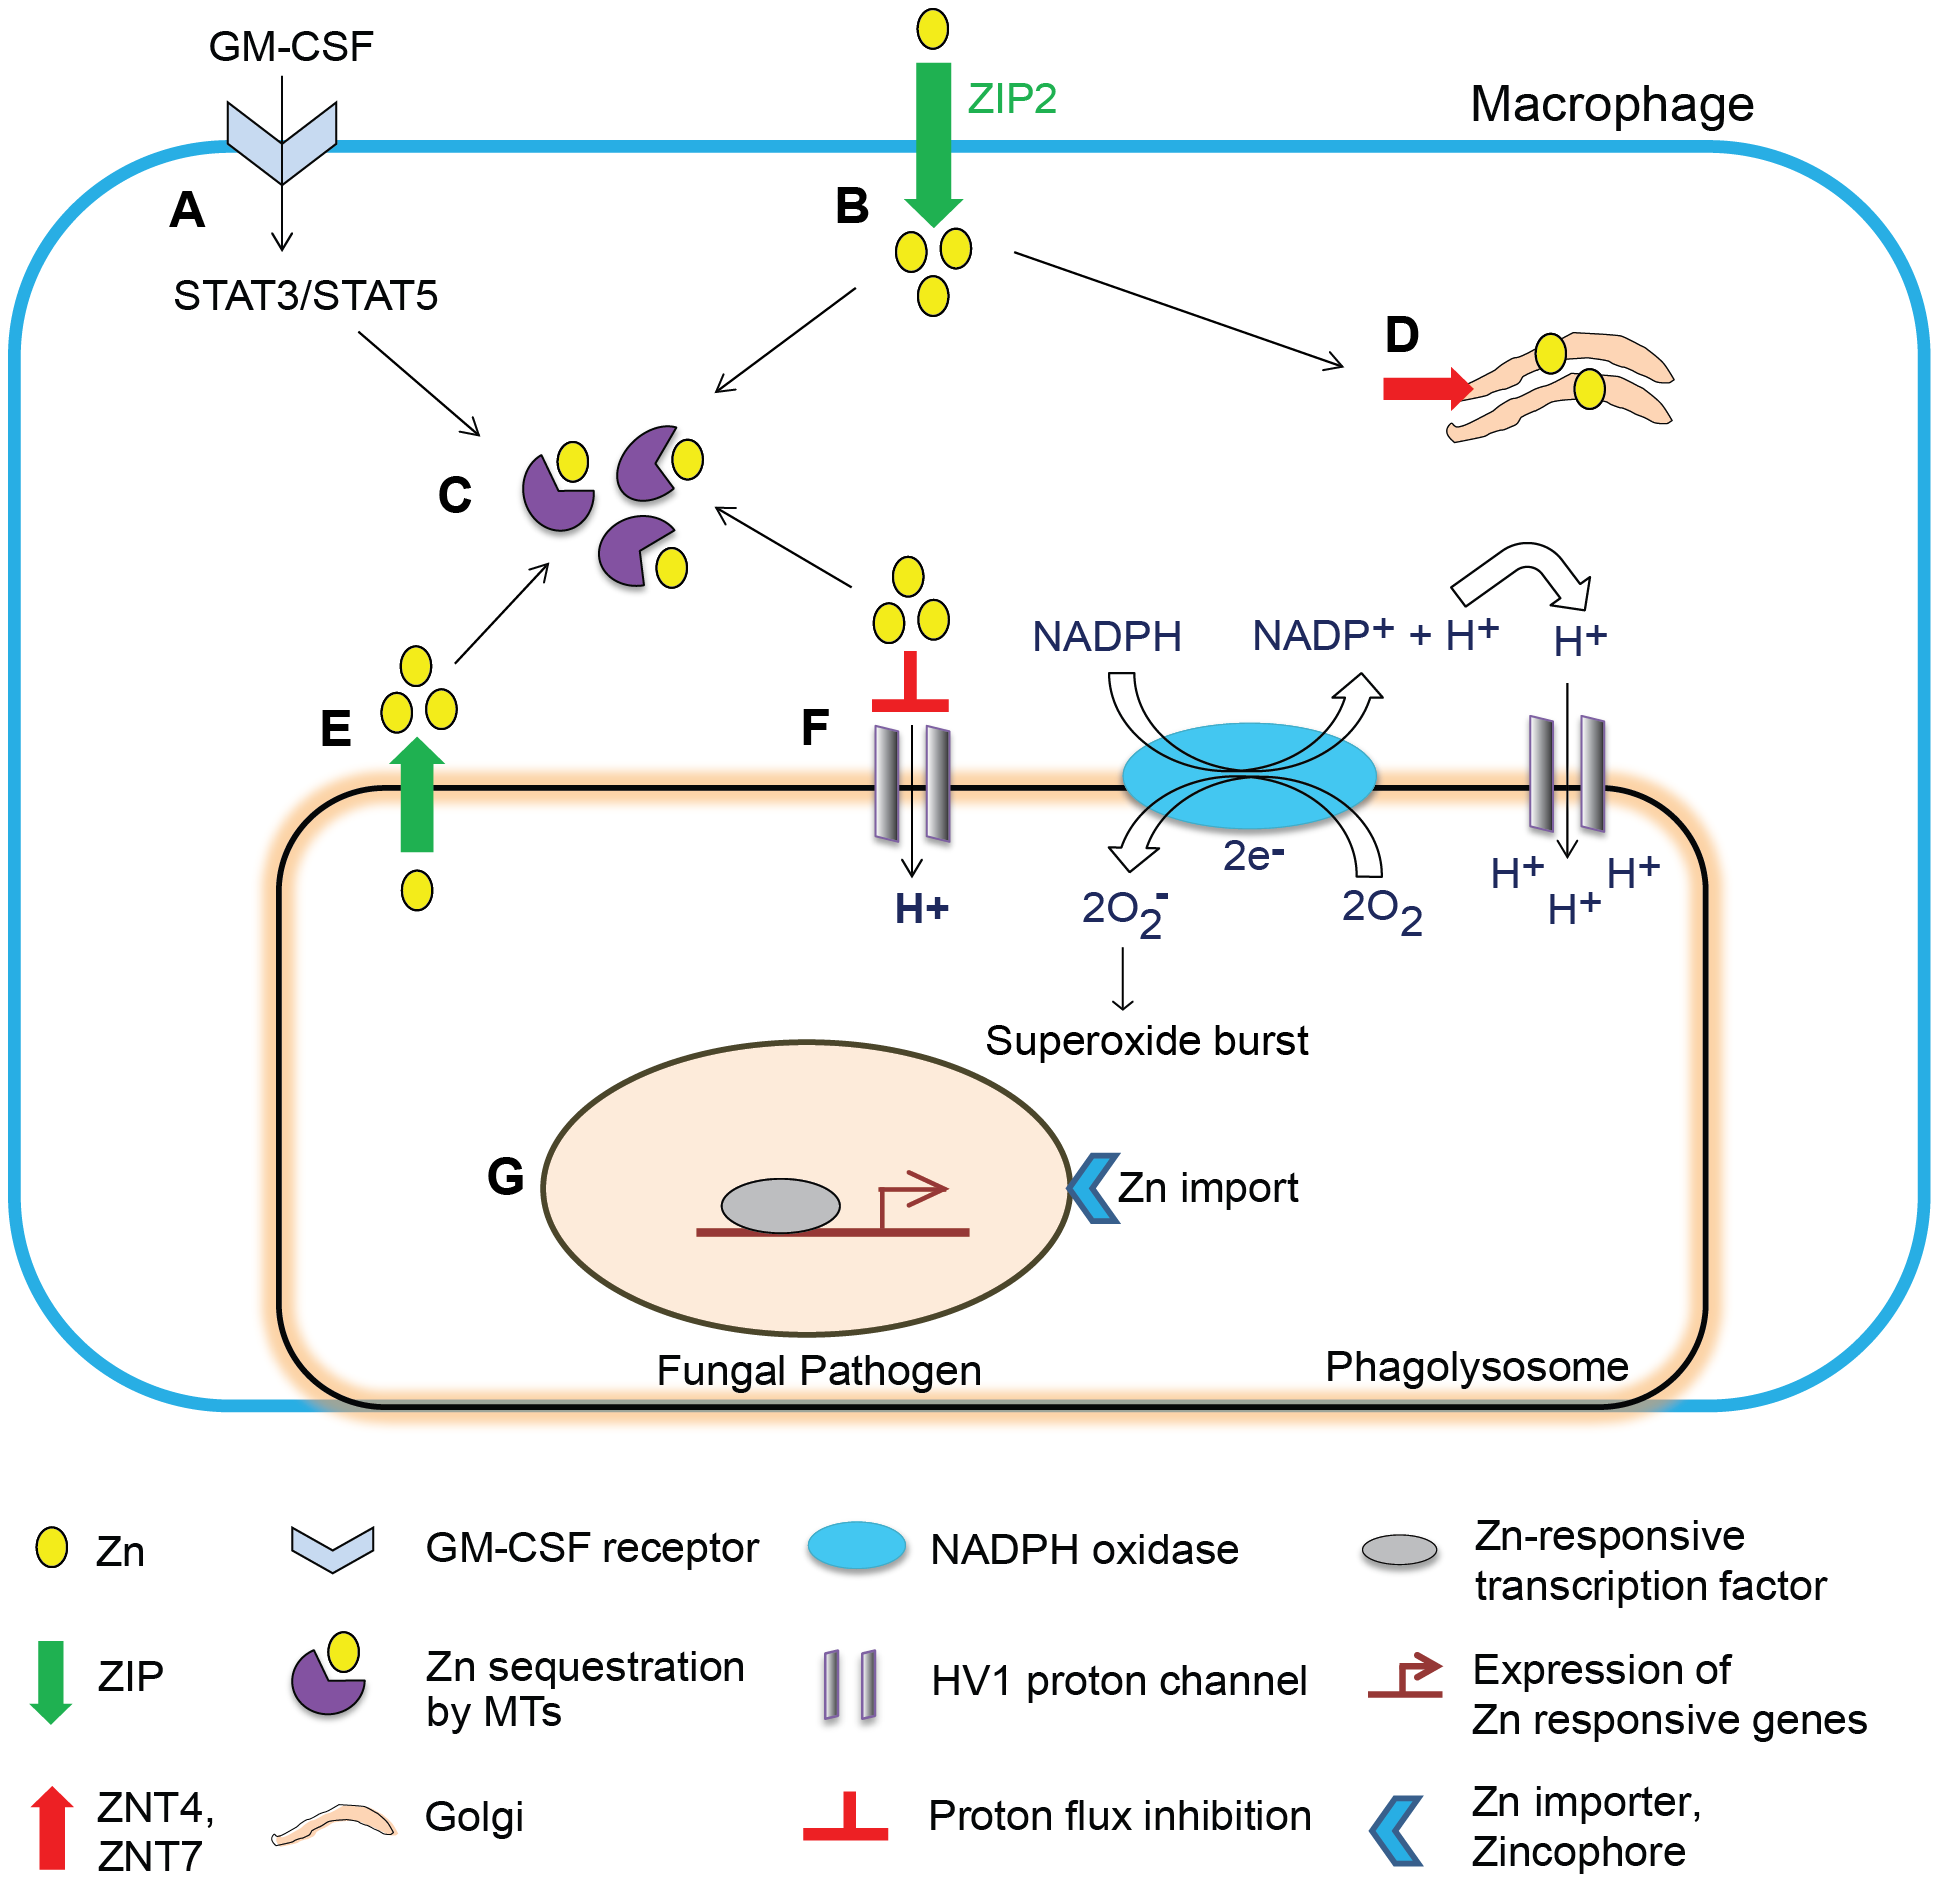 Schematic of Zn regulation in activated macrophages infected with a fungal pathogen.